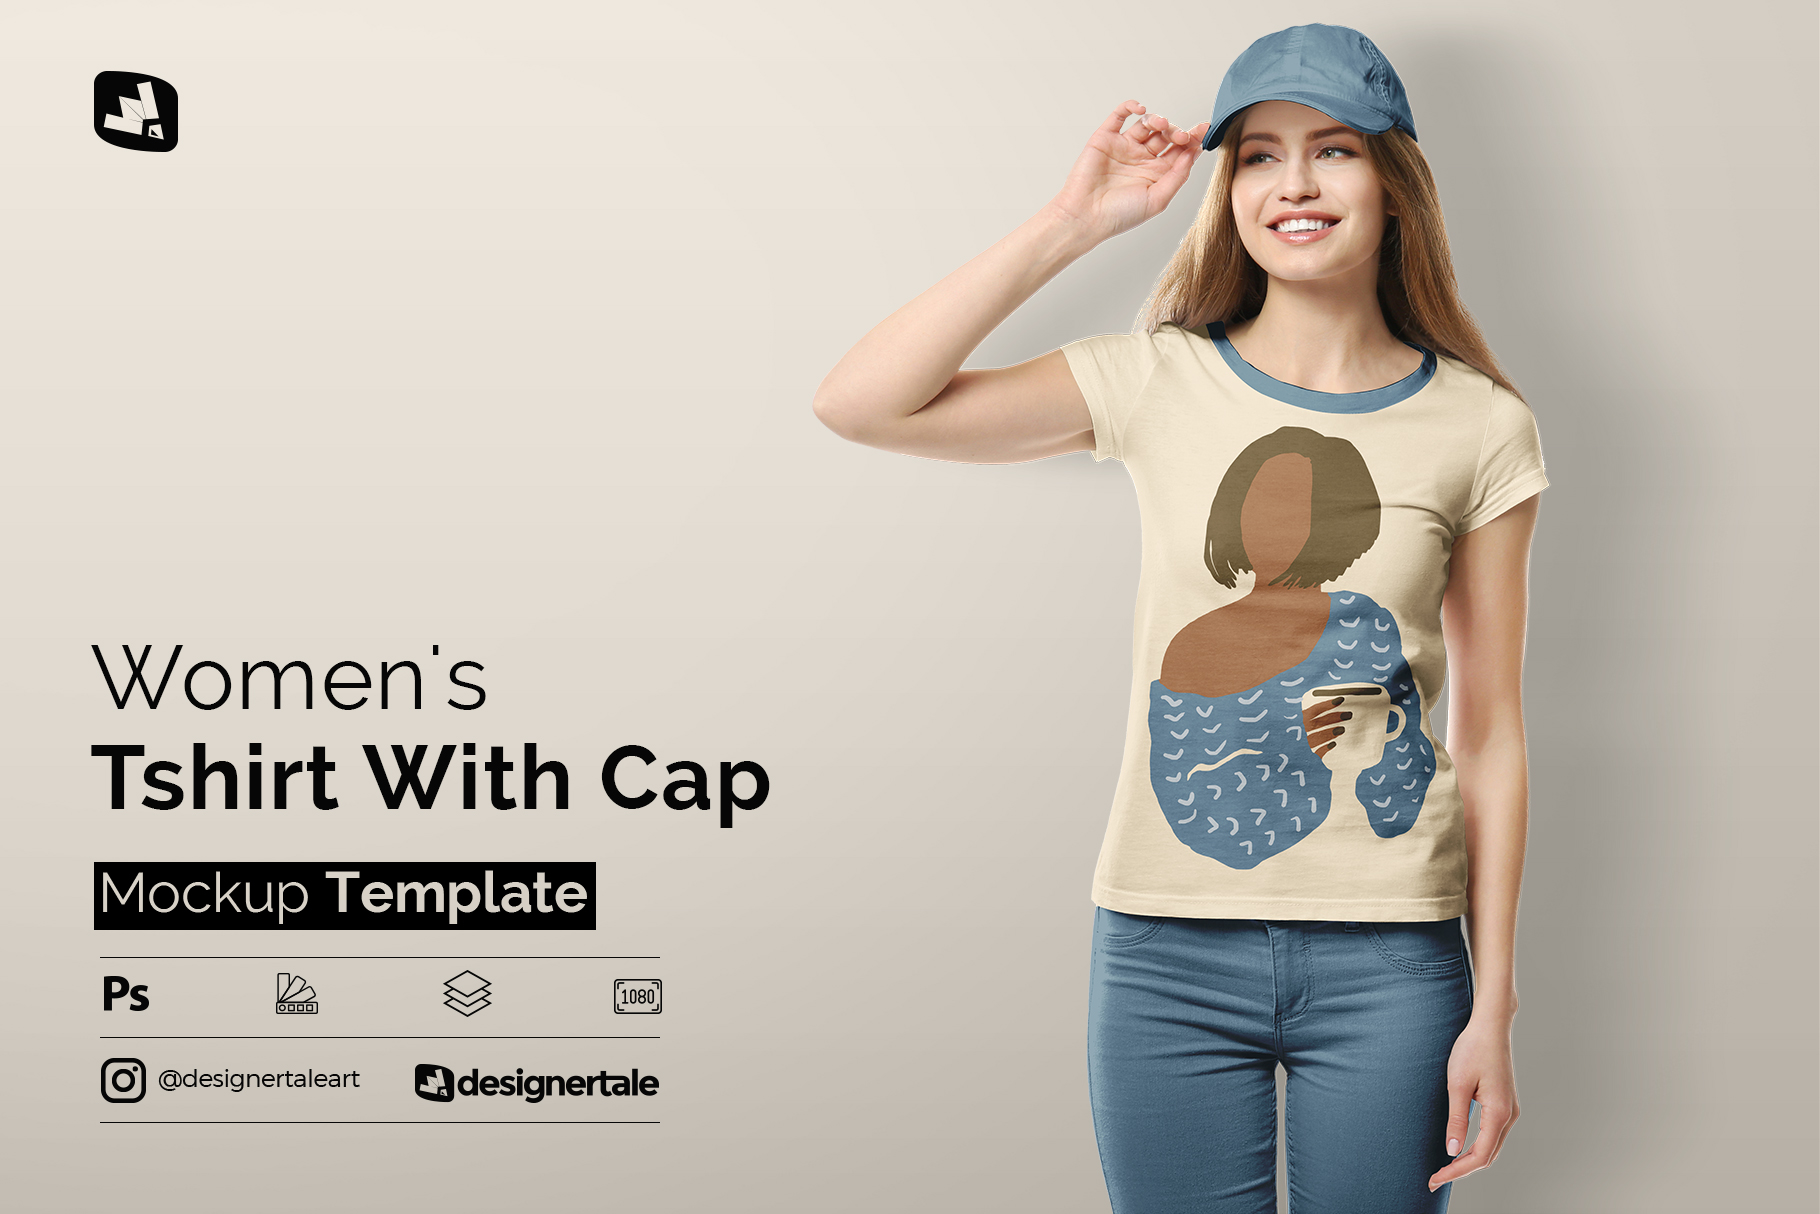 women's tshirt with cap mockup